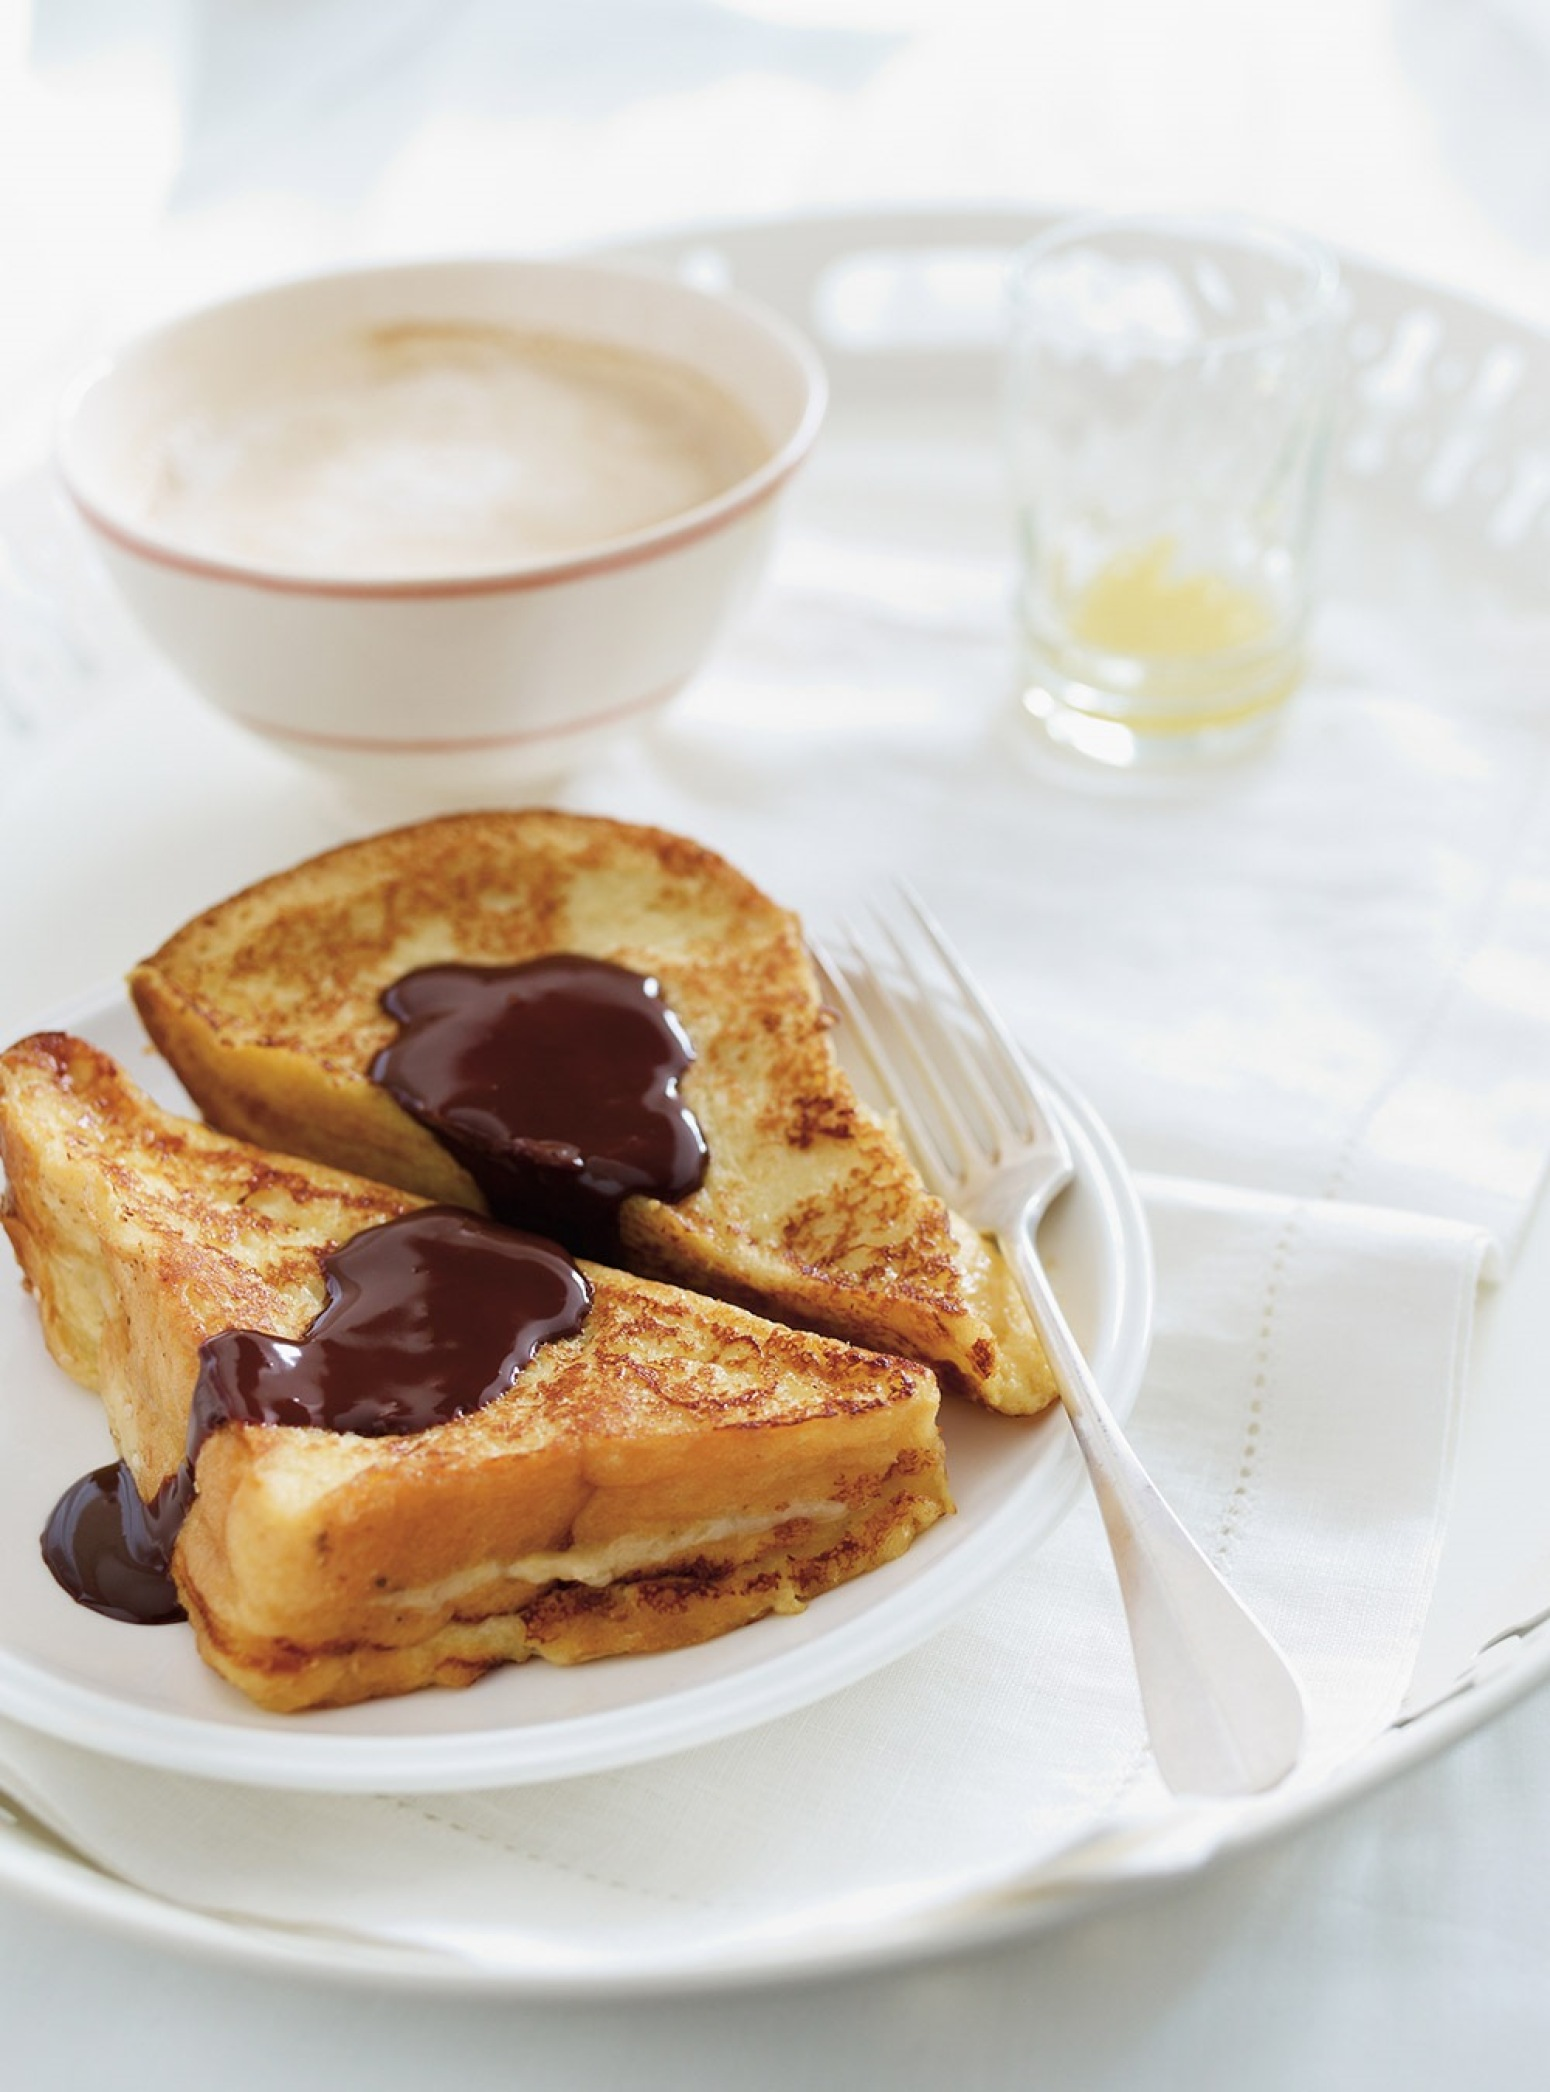 Caramelized Banana French Toast with Chocolate Sauce Recipe 2 | Just A ...